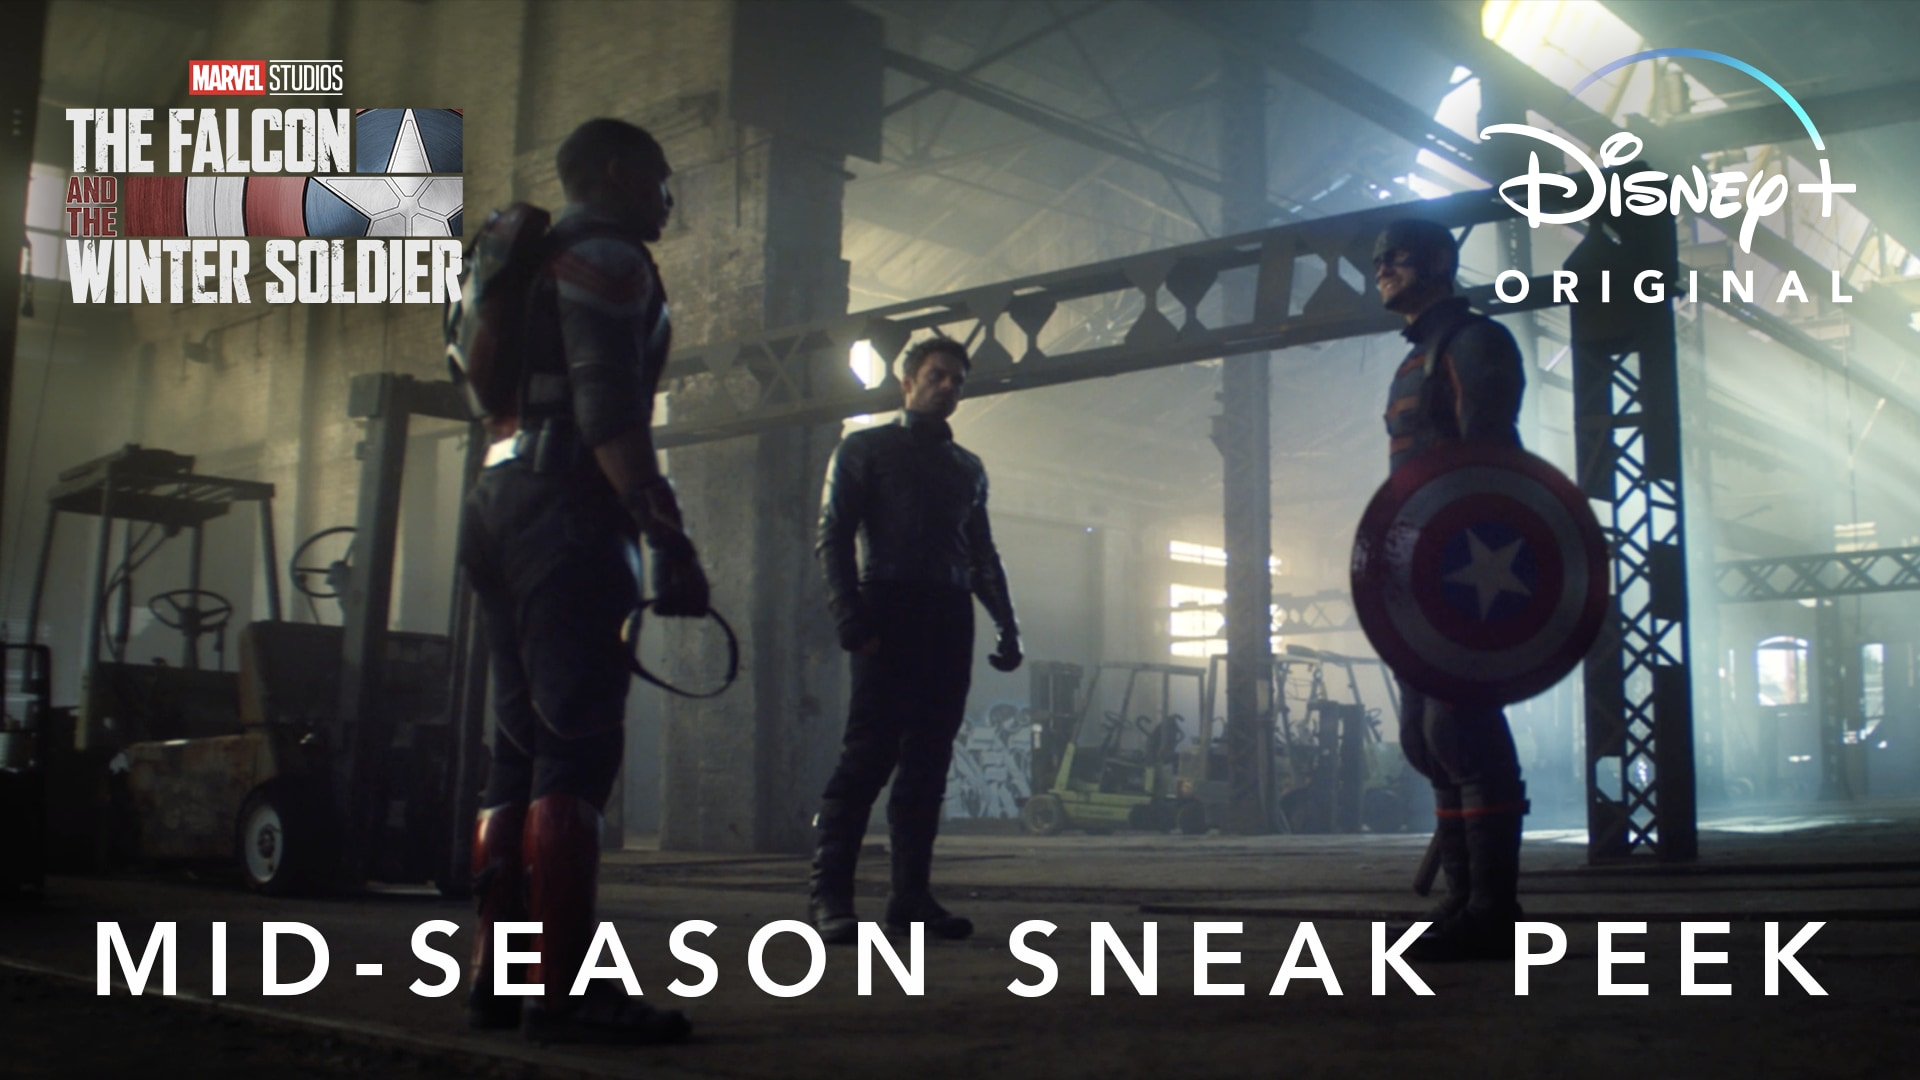 Mid-Season Sneak Peek | The Falcon and The Winter Soldier | Disney+